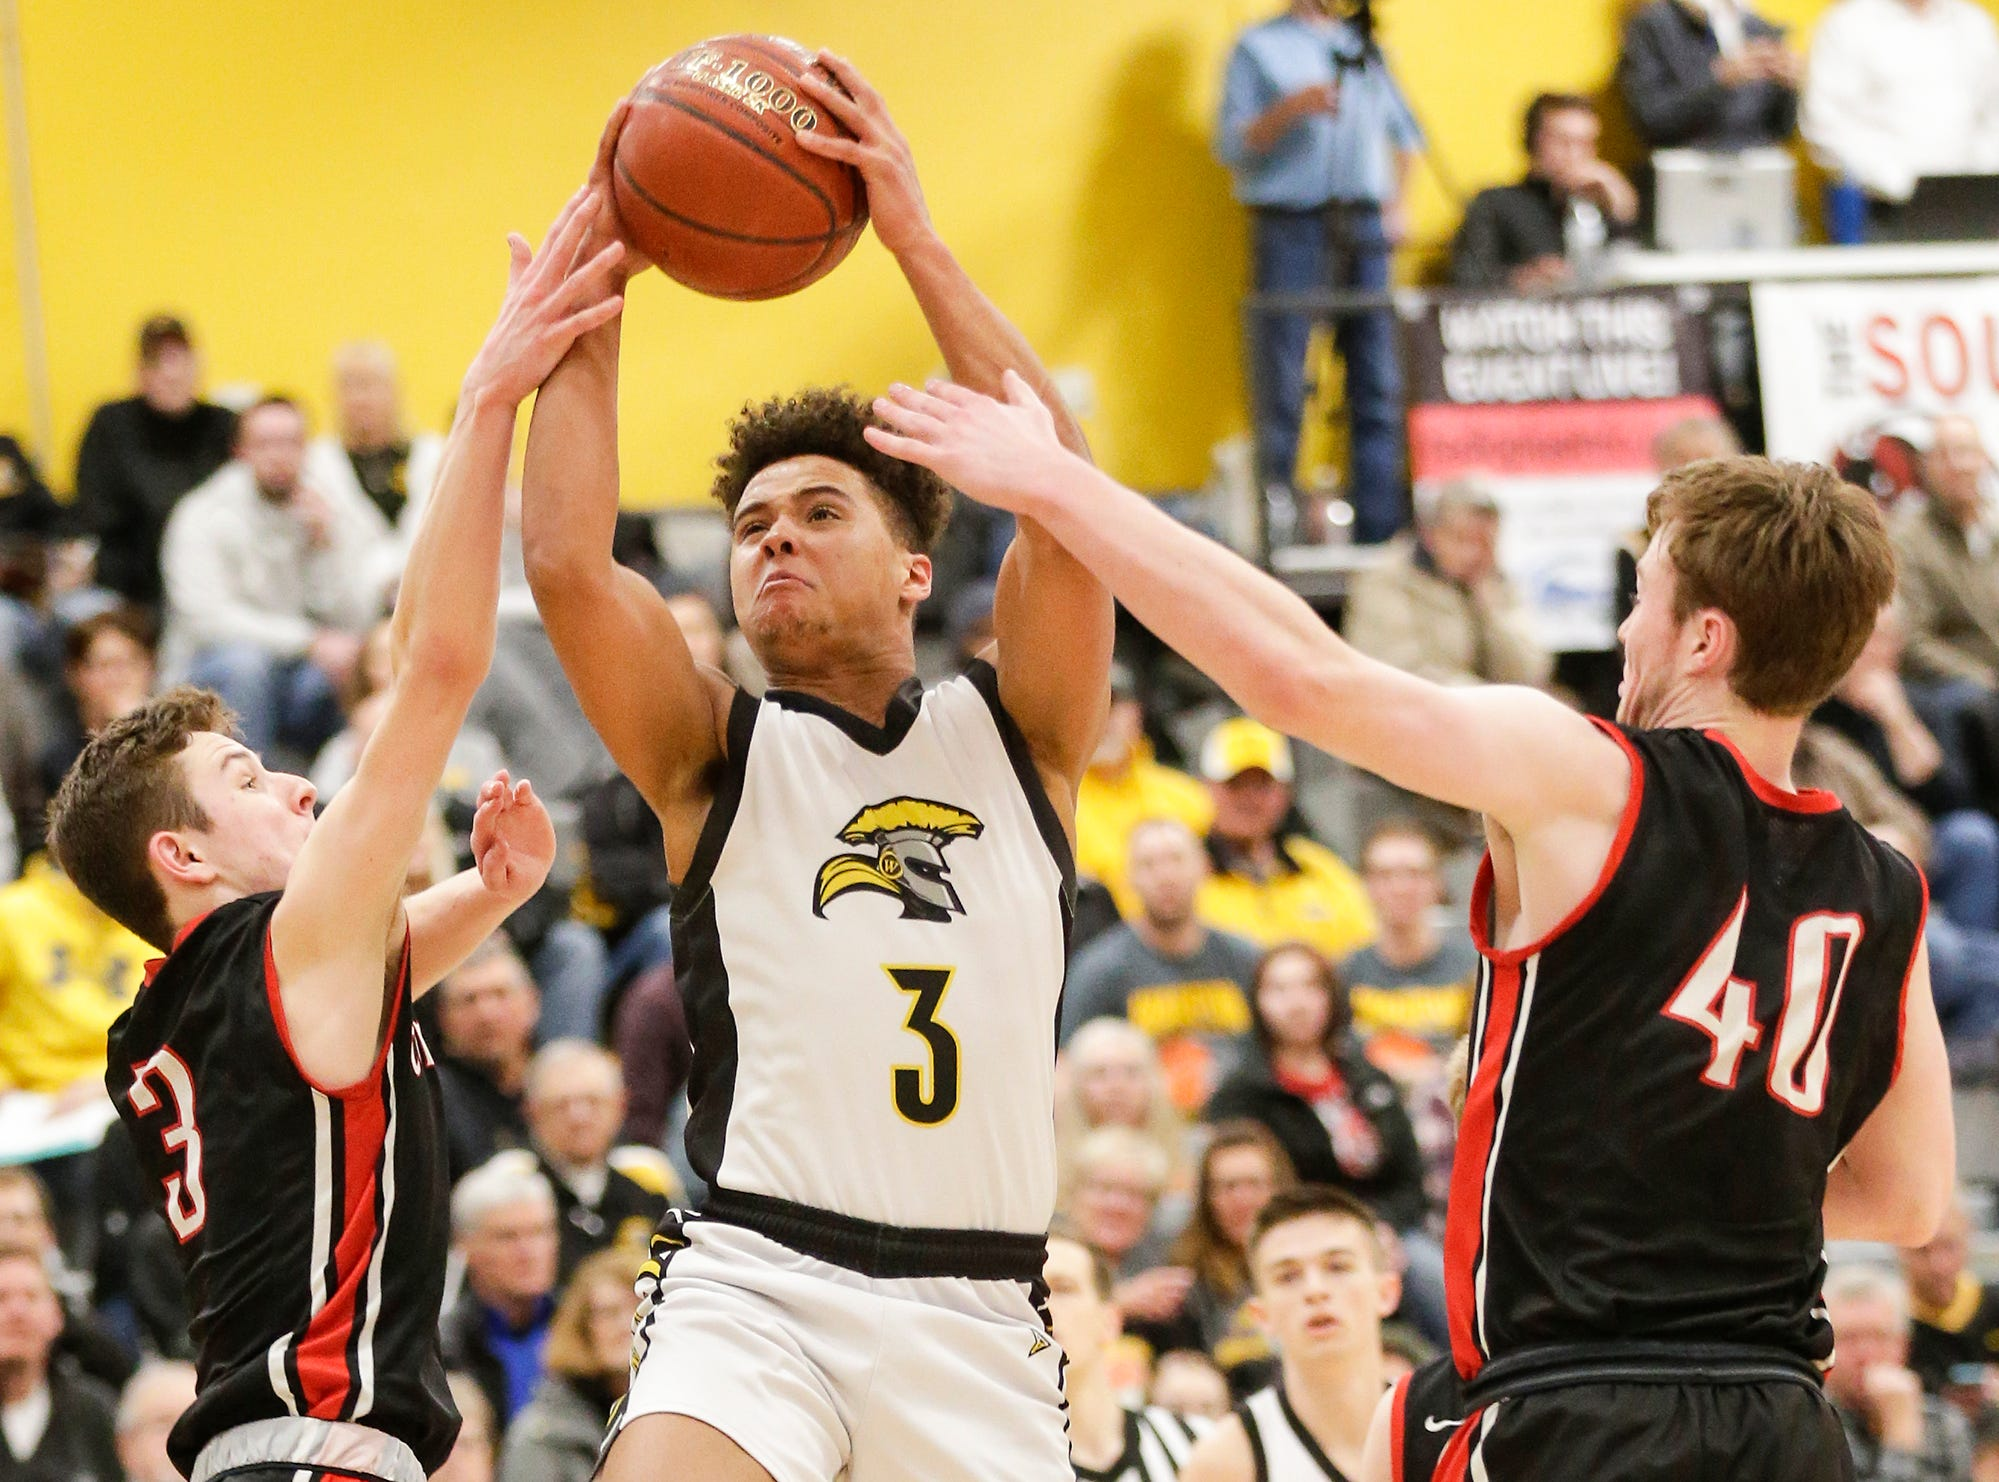 Waupun High School boys basketball's Quintin Winterfeldt splits Columbus High School's Caden Bieker (3) and Ben Emler (40) as he goes up for a basket during their WIAA division 3 sectional semi-final game Thursday, March 7, 2019 in Beaver Dam, Wis. Waupun won the game 79-36. Doug Raflik/USA TODAY NETWORK-Wisconsin